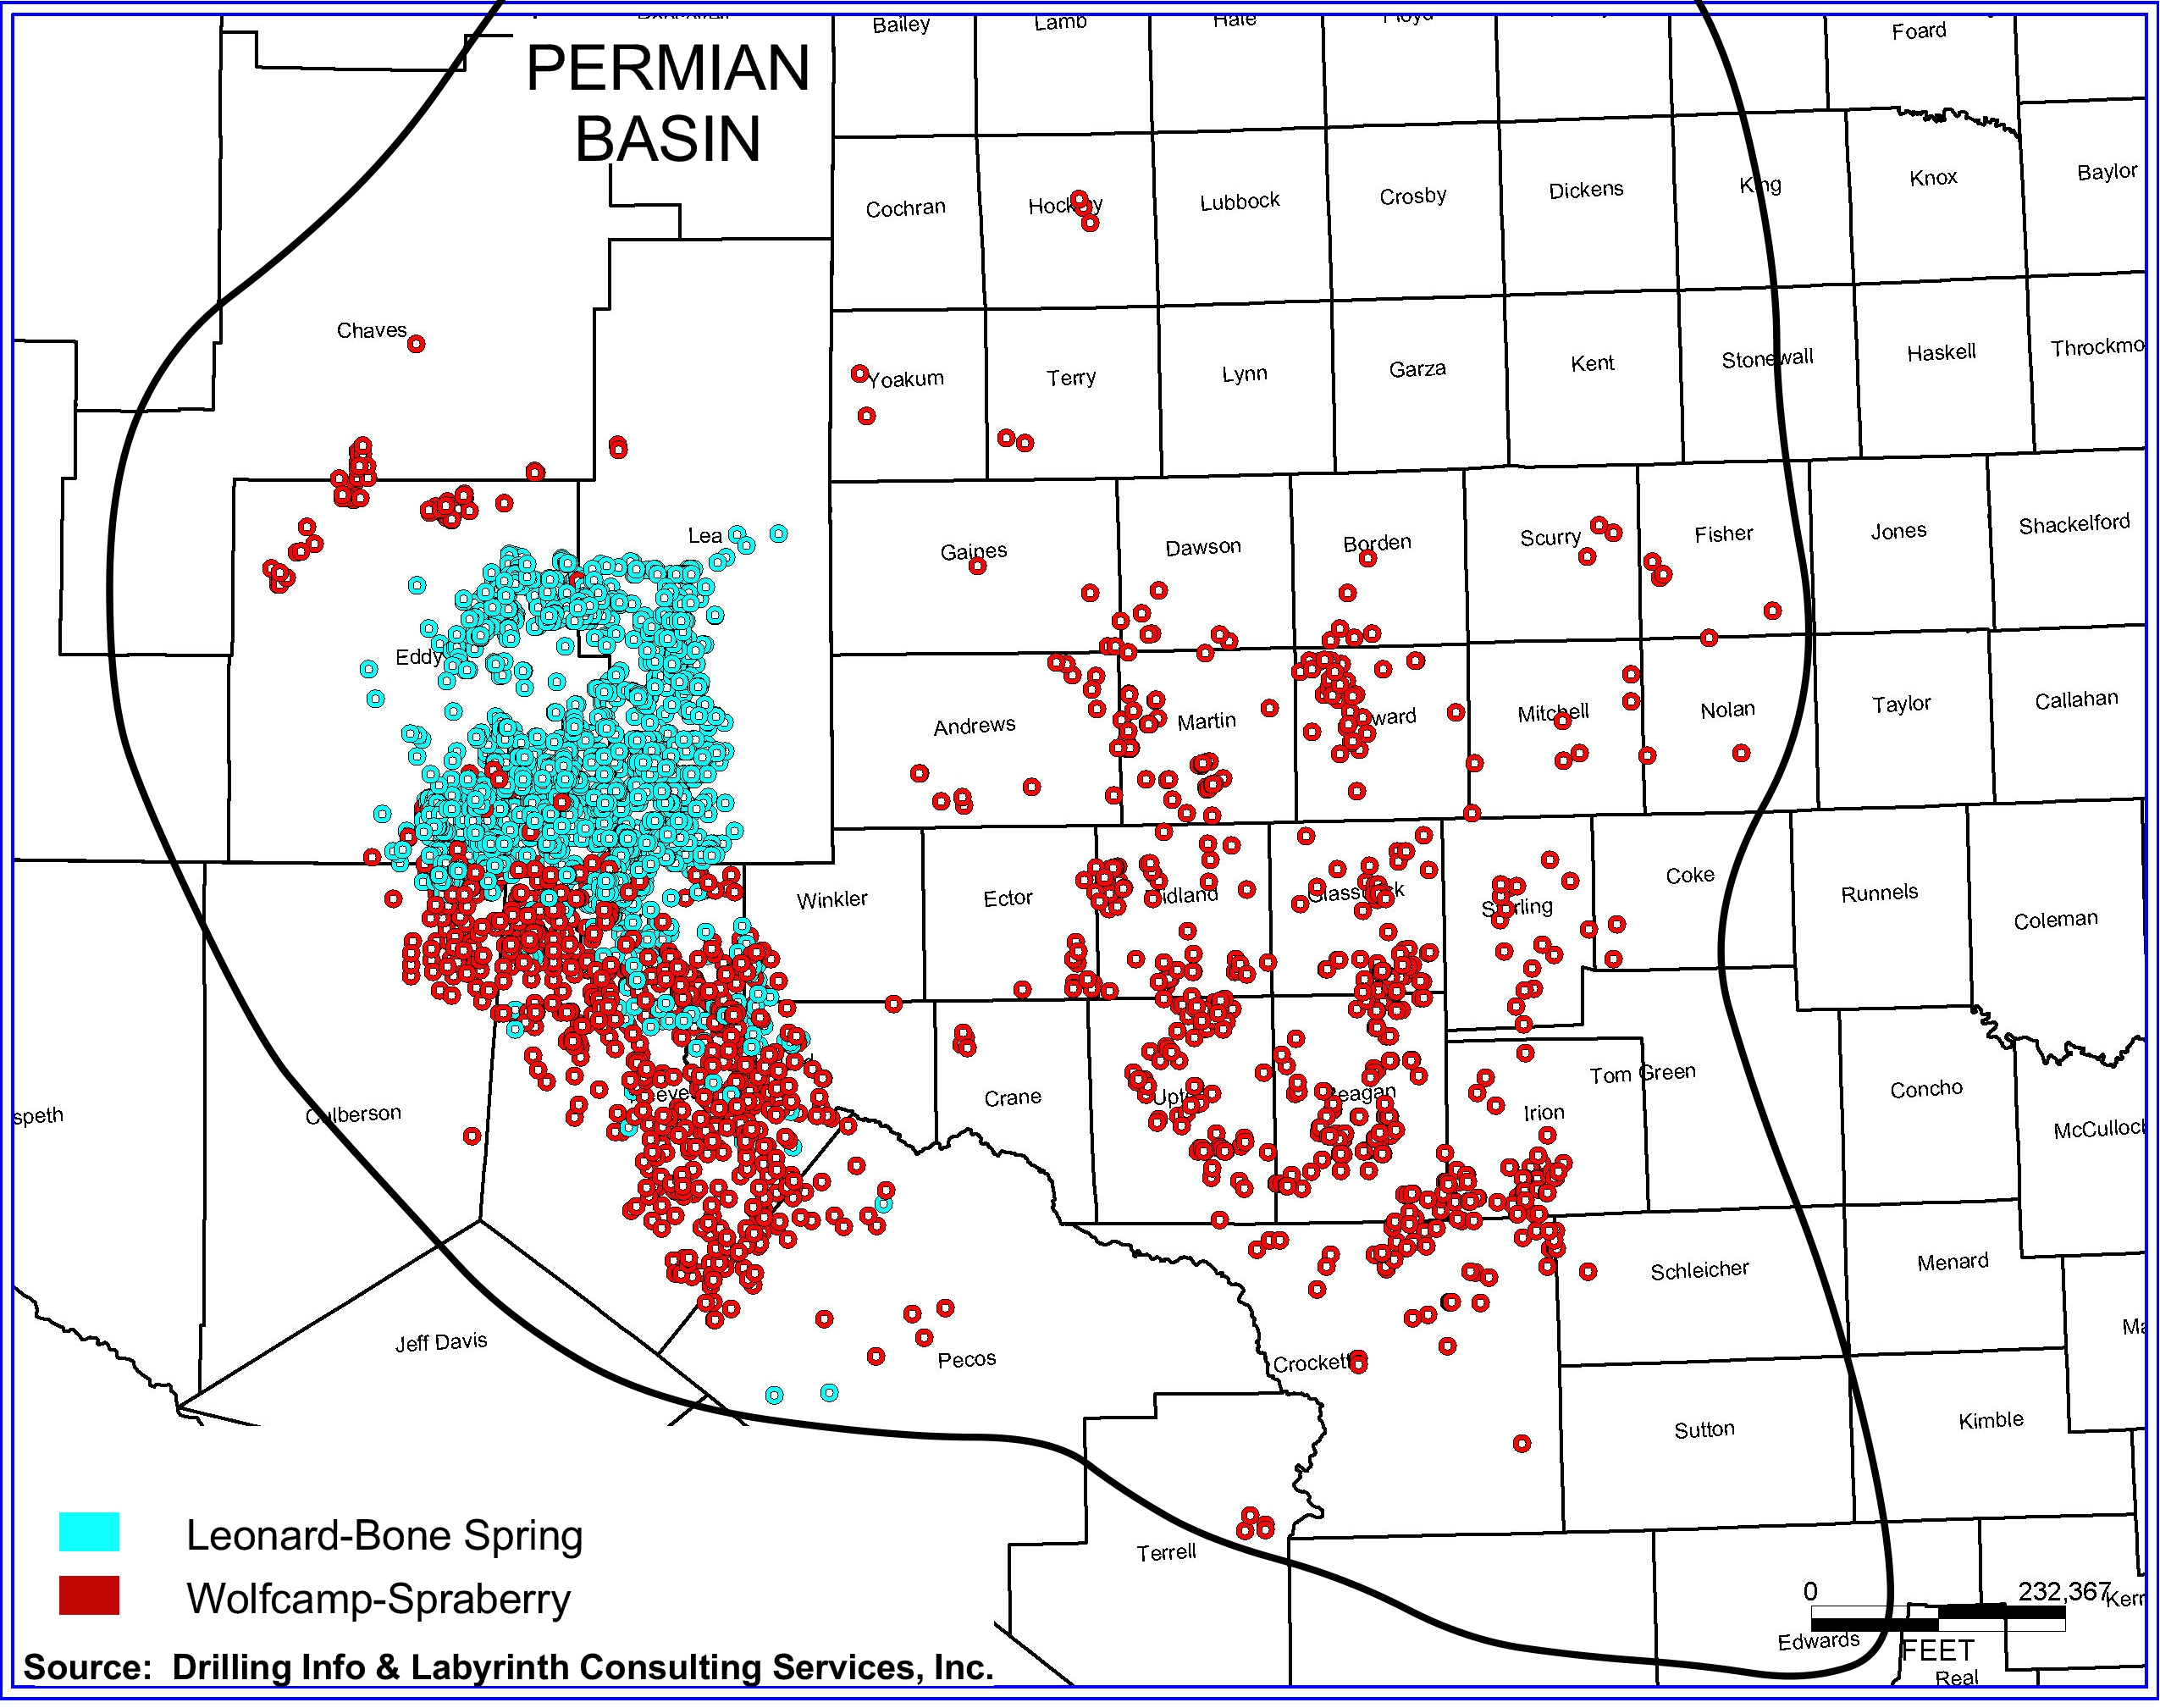 Less Than  Percent Of Permian Basin Commercial At  Oil - Shale gas map usa